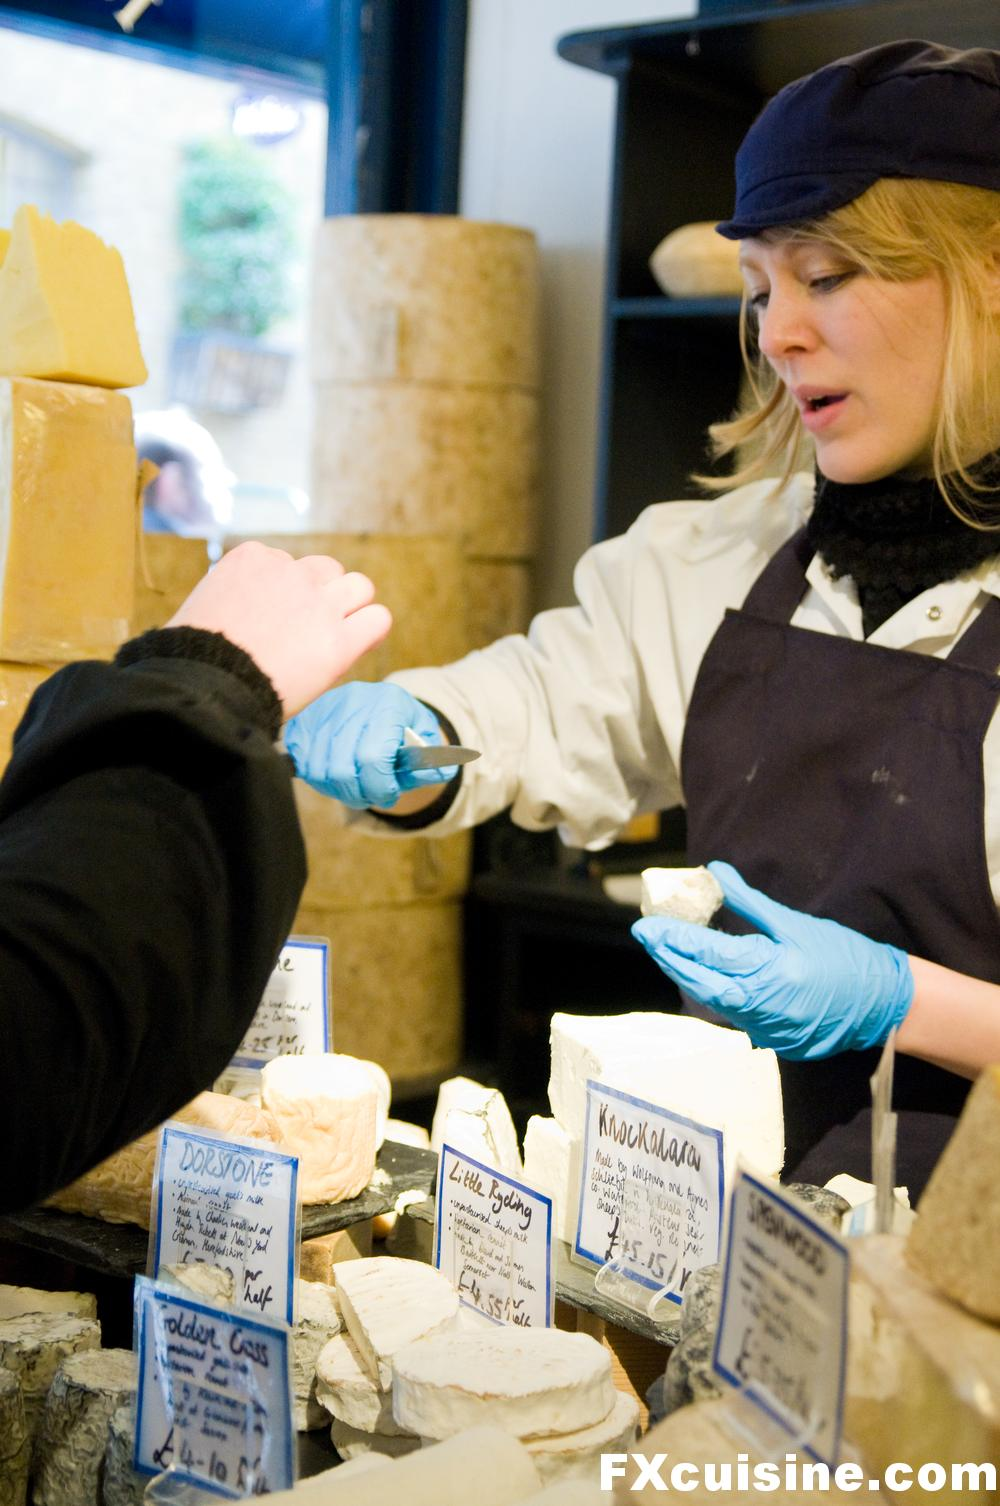 "Back to article '<p><a href=""http://fxcuisine.com/zoom-image.asp?image=http://fxcuisine.com/blogimages/cheese/britain/neals-yard-dairy/neals-yard-dairy-10-1000.jpg&t=%%t%%""><img src=""http://fxcuisine.com/blogimages/ch'"